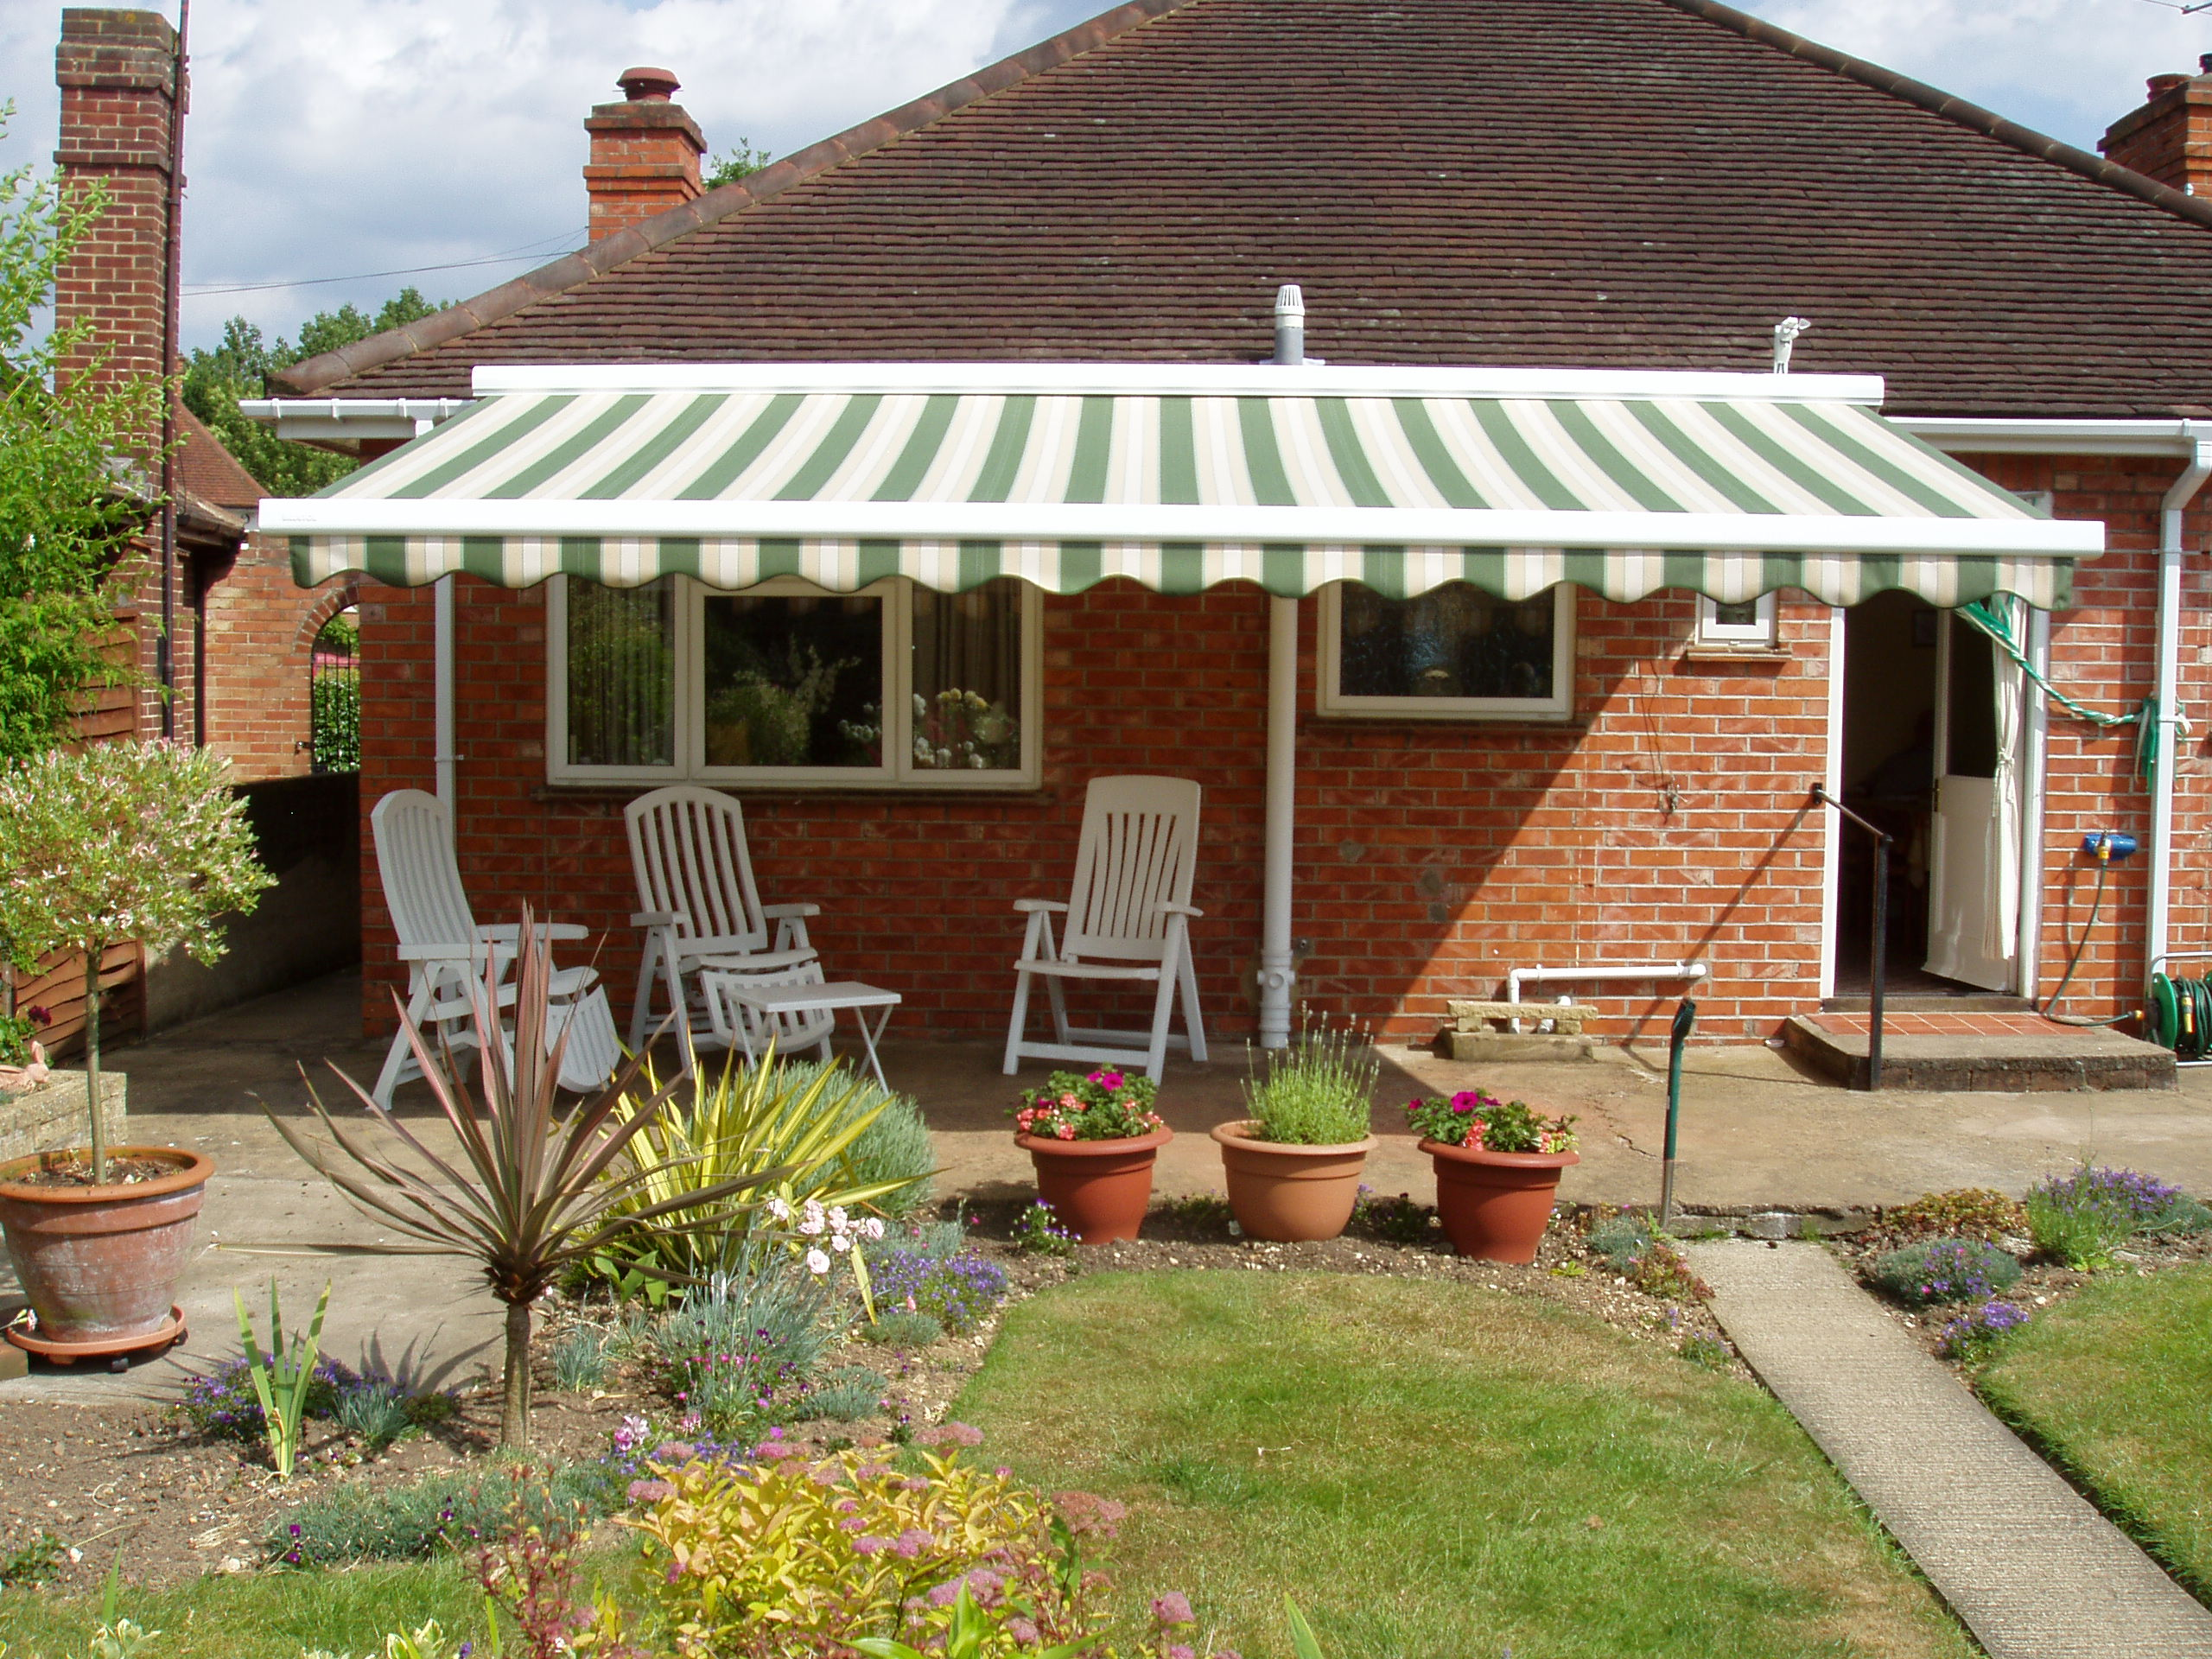 Patio Awning Specialist installation to a Bungalow Kover it Blog